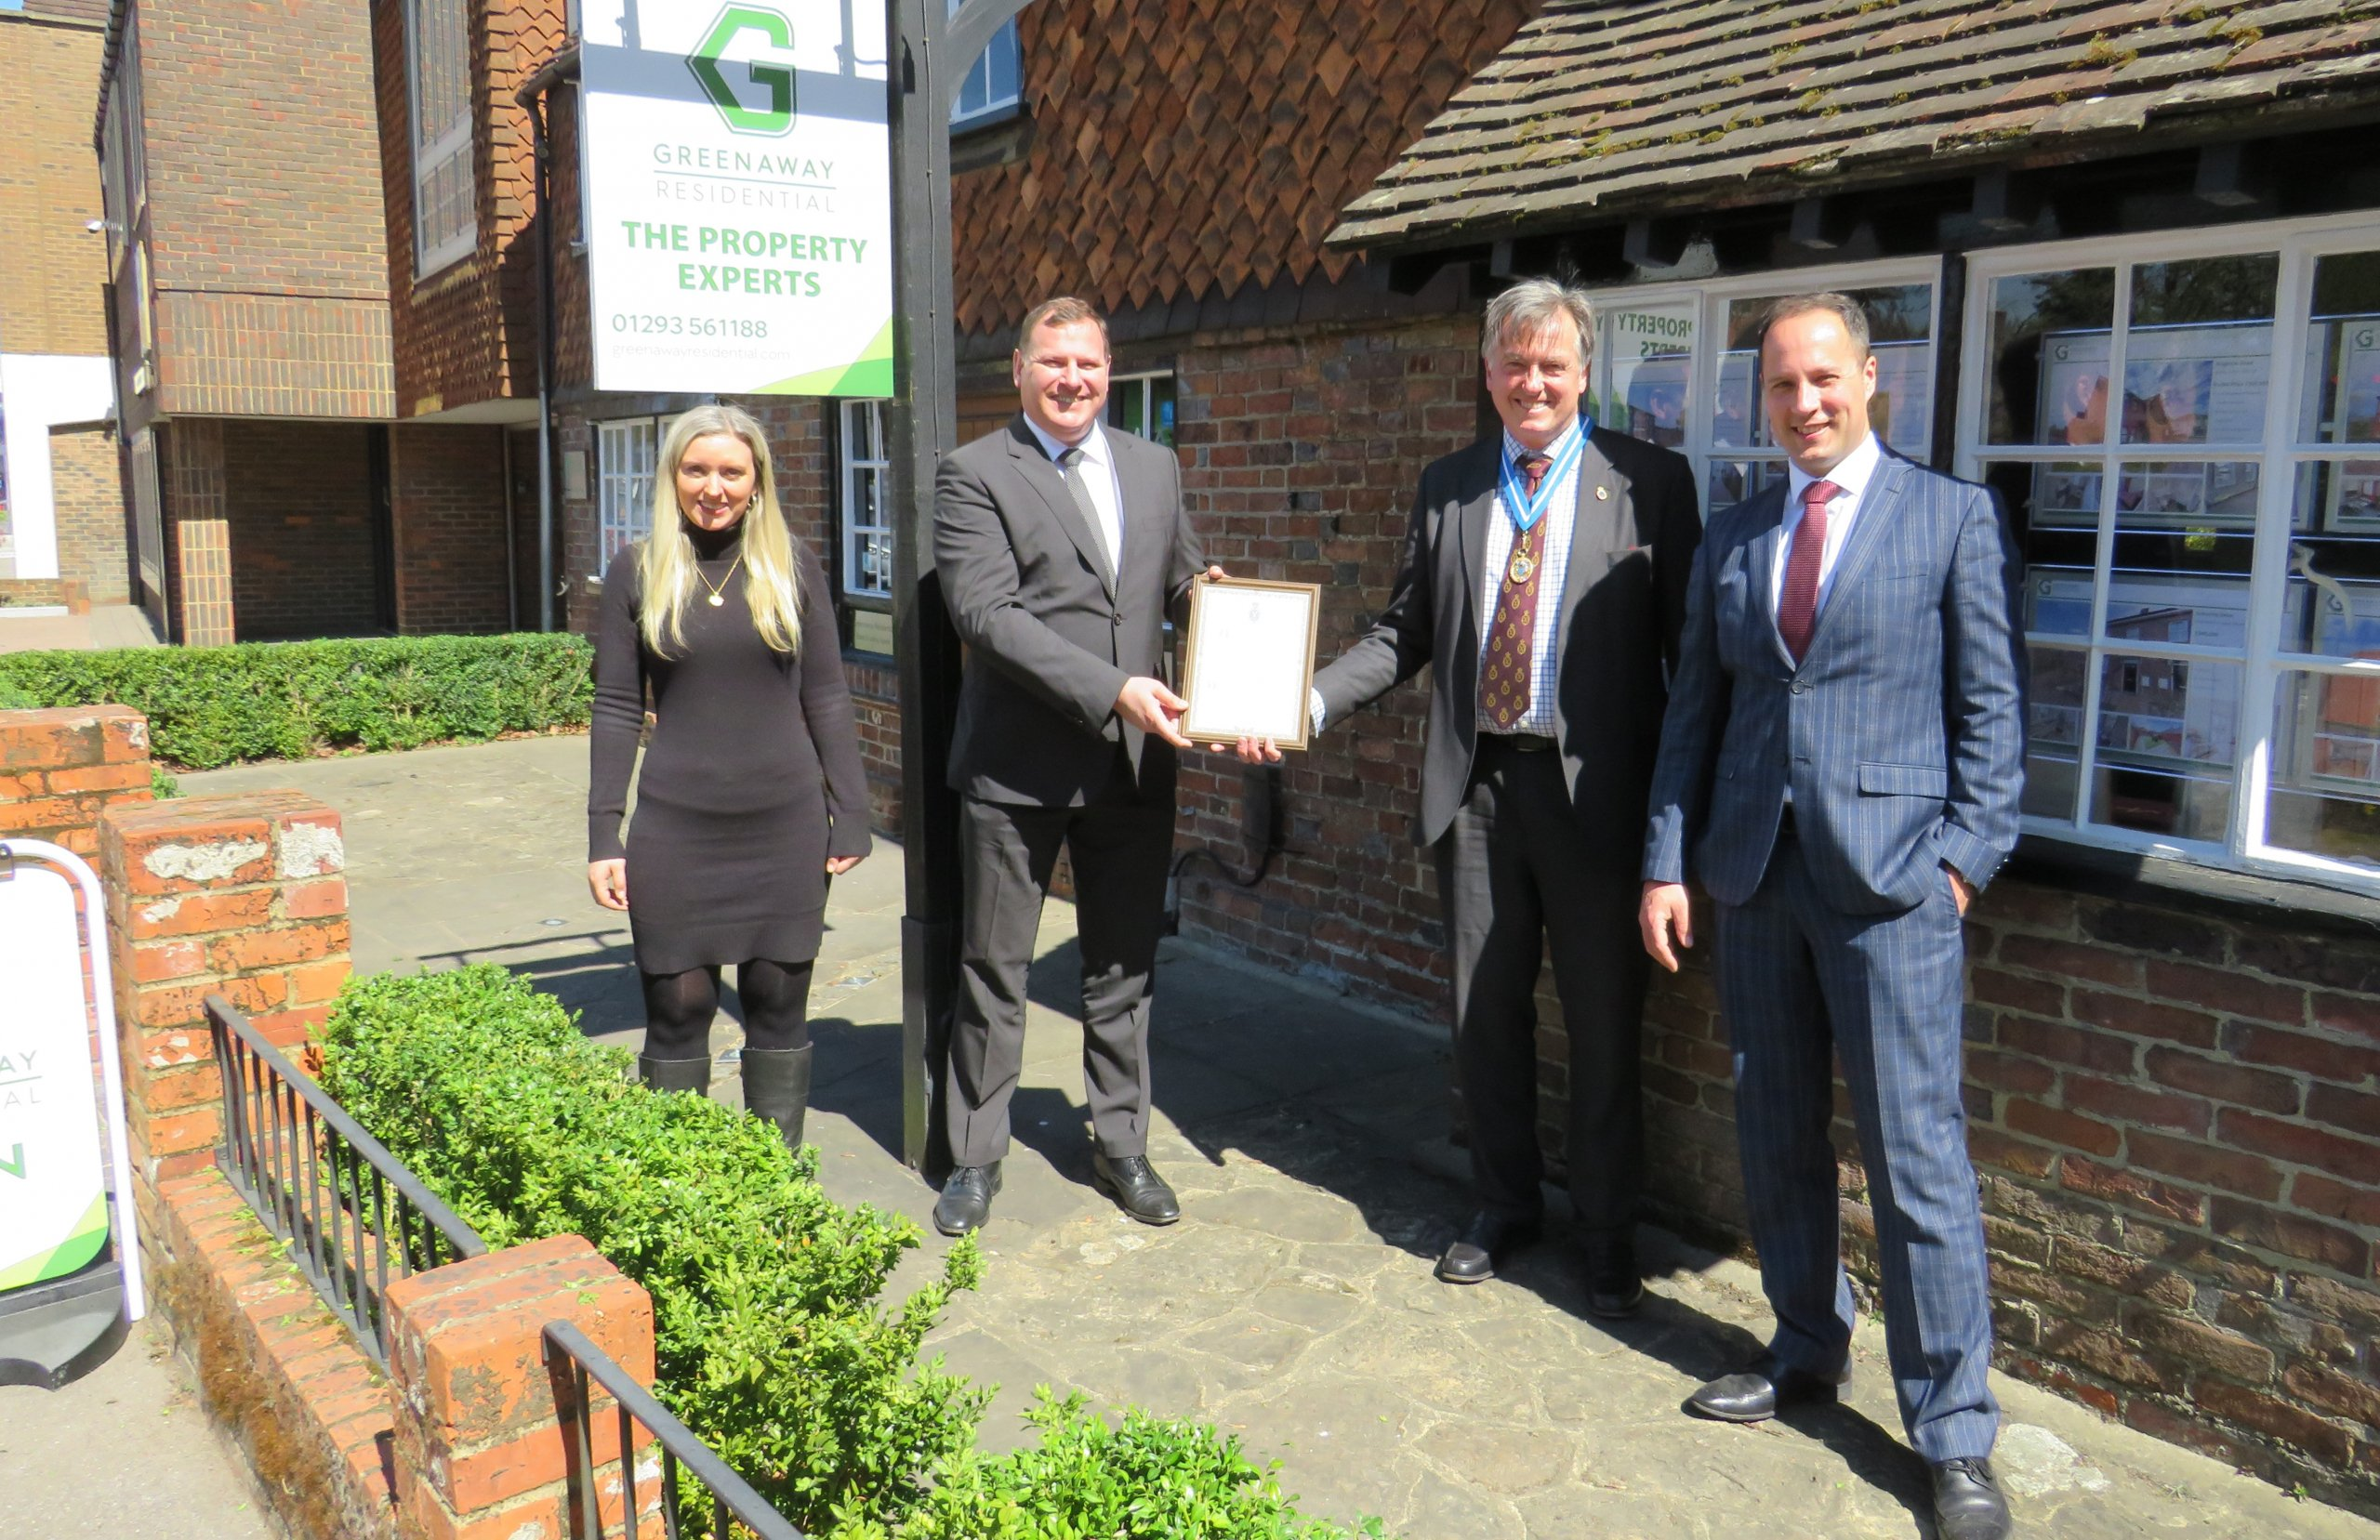 The Greenaway Foundation receives a High Sheriff Award for services to the Community